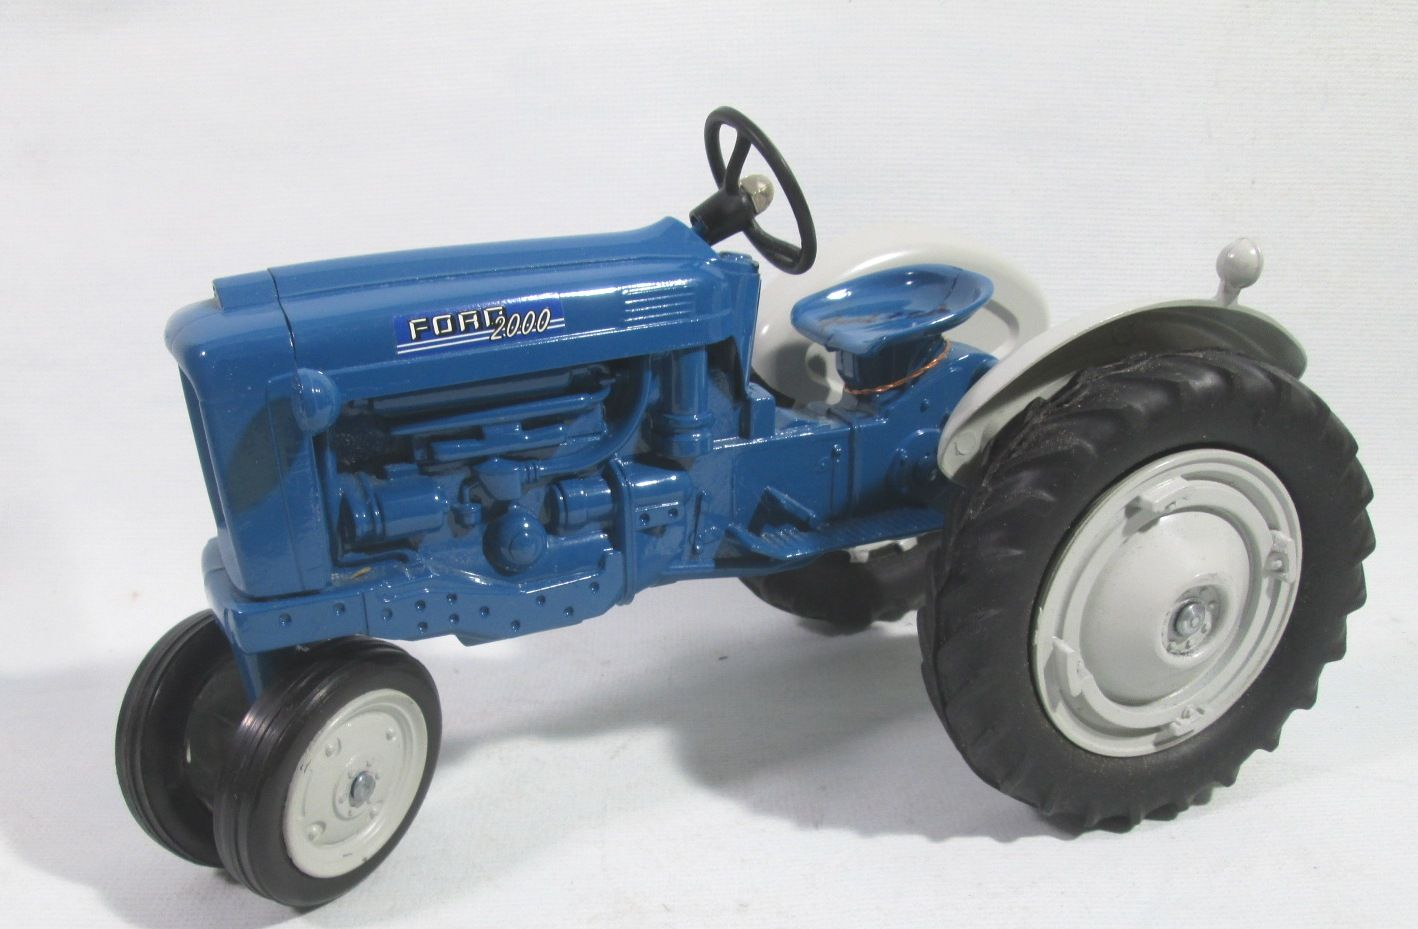 Ford 2000 1 12 Scale Cast Farm Toy Tractor Made In Usa New Box See Case 61 60 00 Three Plus Cases Full Of Toys To Choose From